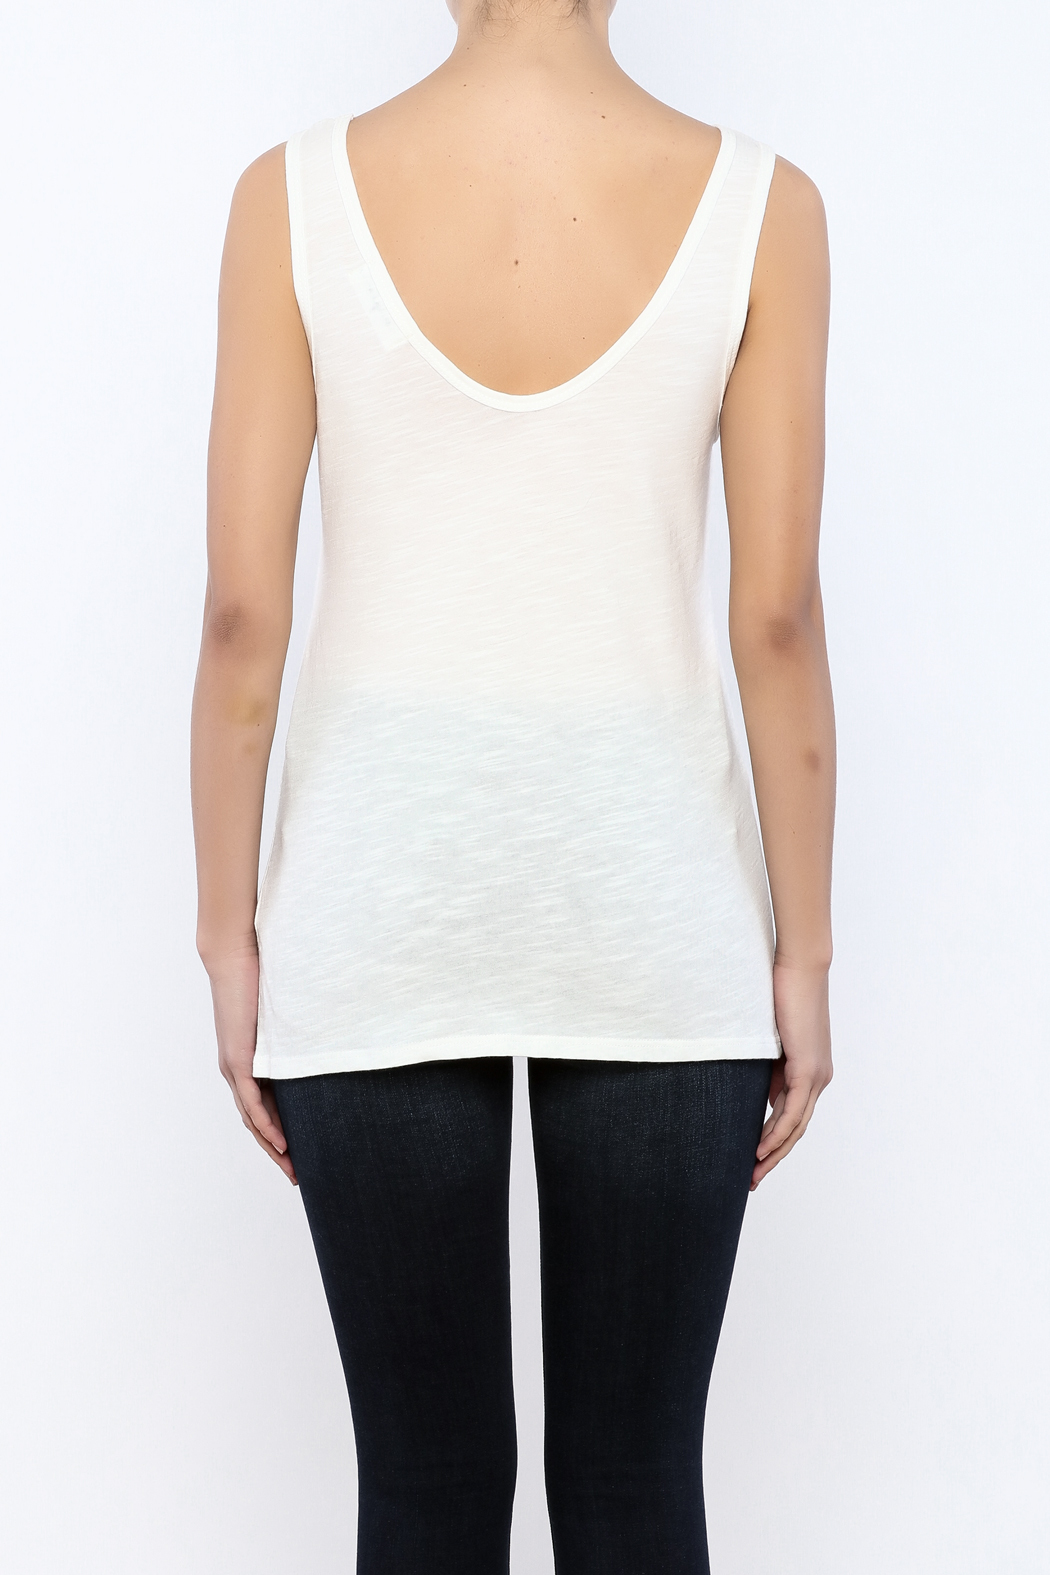 Bacio Scoop Neck Tank - Back Cropped Image